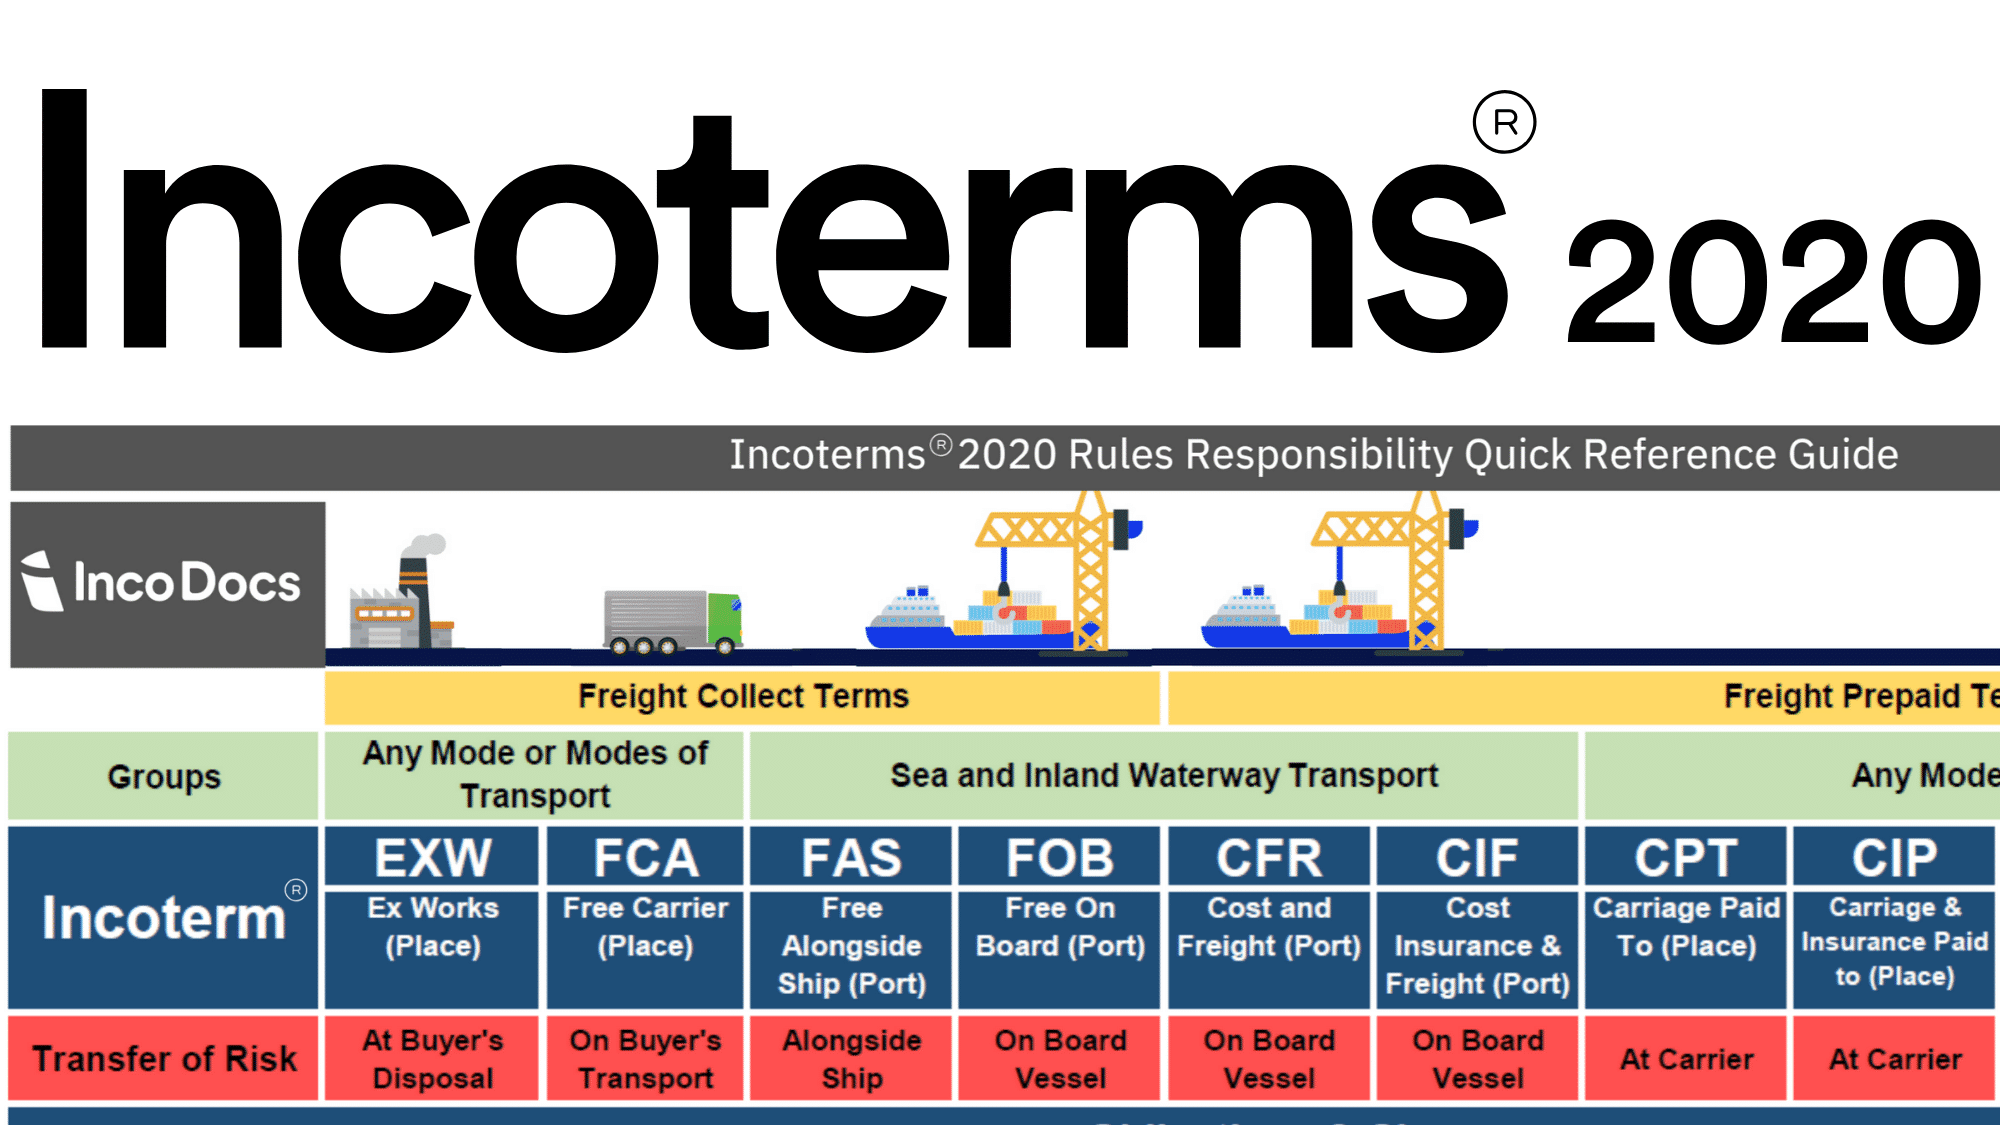 Why the Incoterms® are so important when shipping